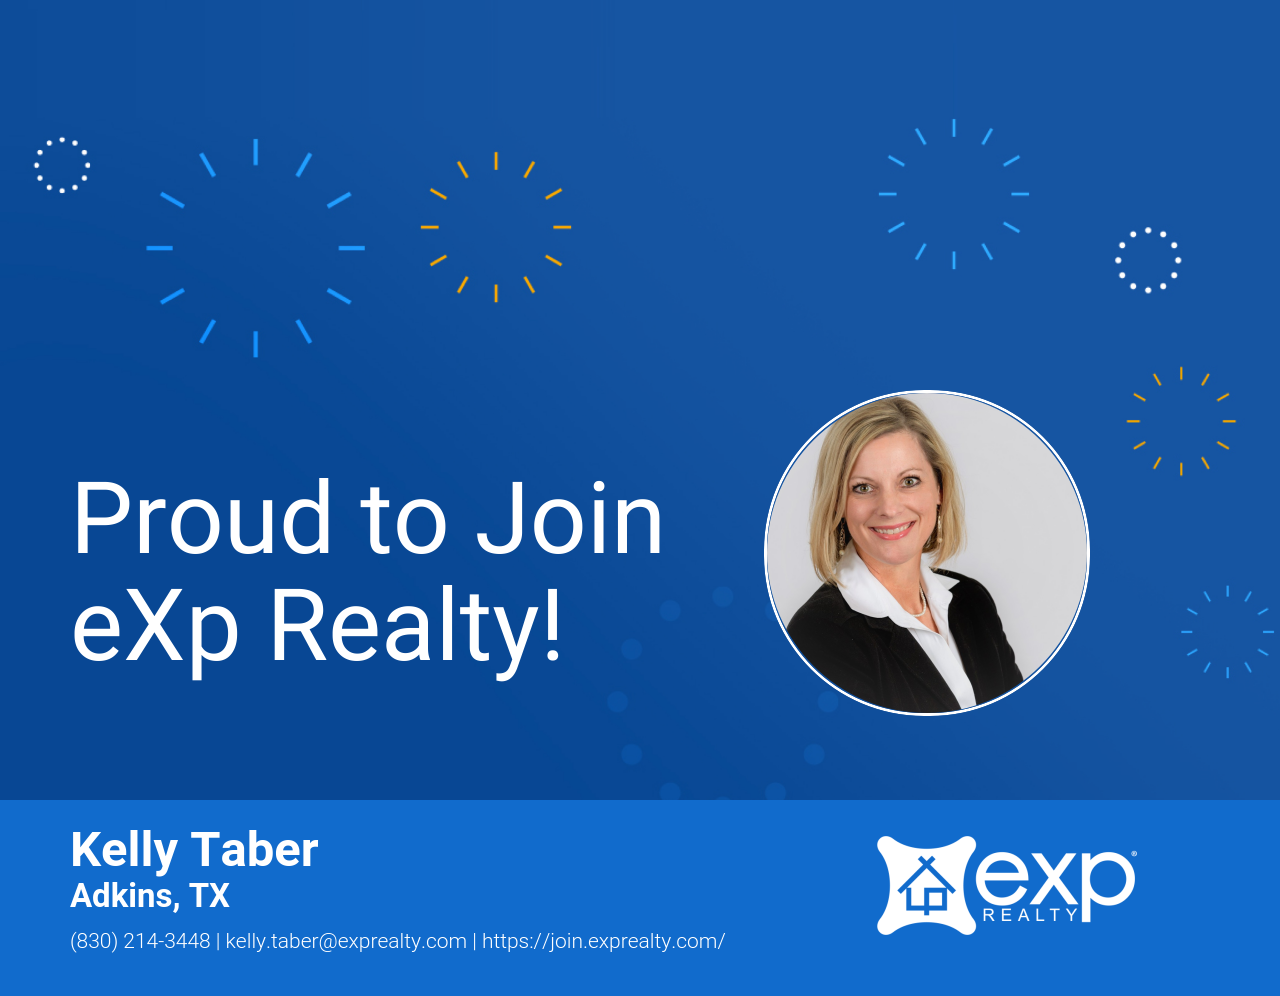 Kelly Taber Joined eXp Realty!